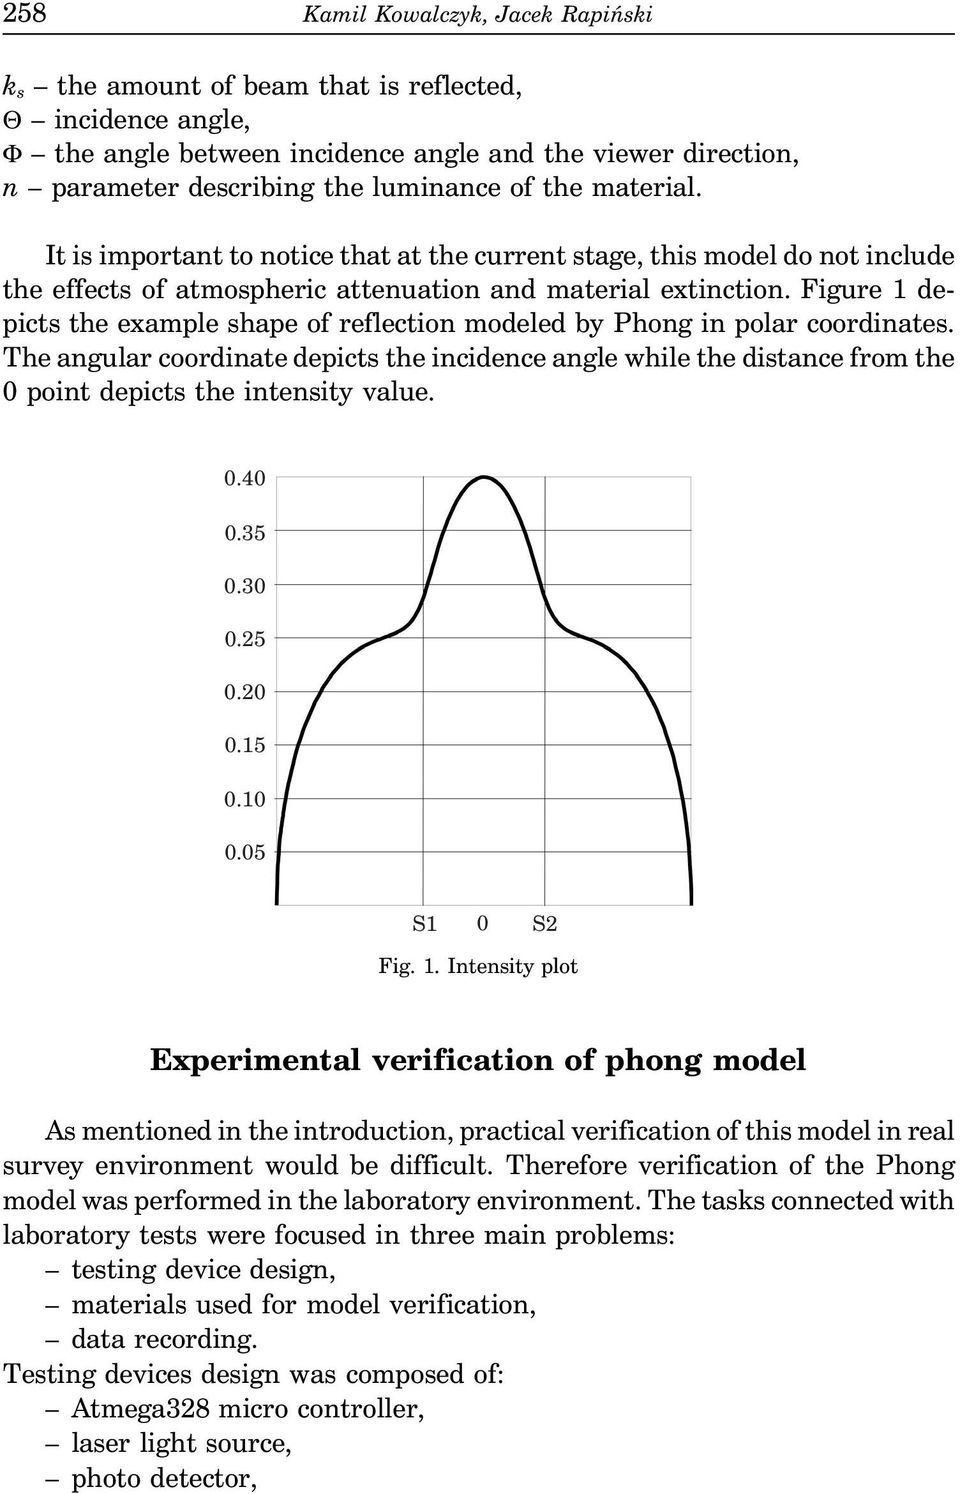 Figure 1 depicts the example shape of reflection modeled by Phong in polar coordinates.